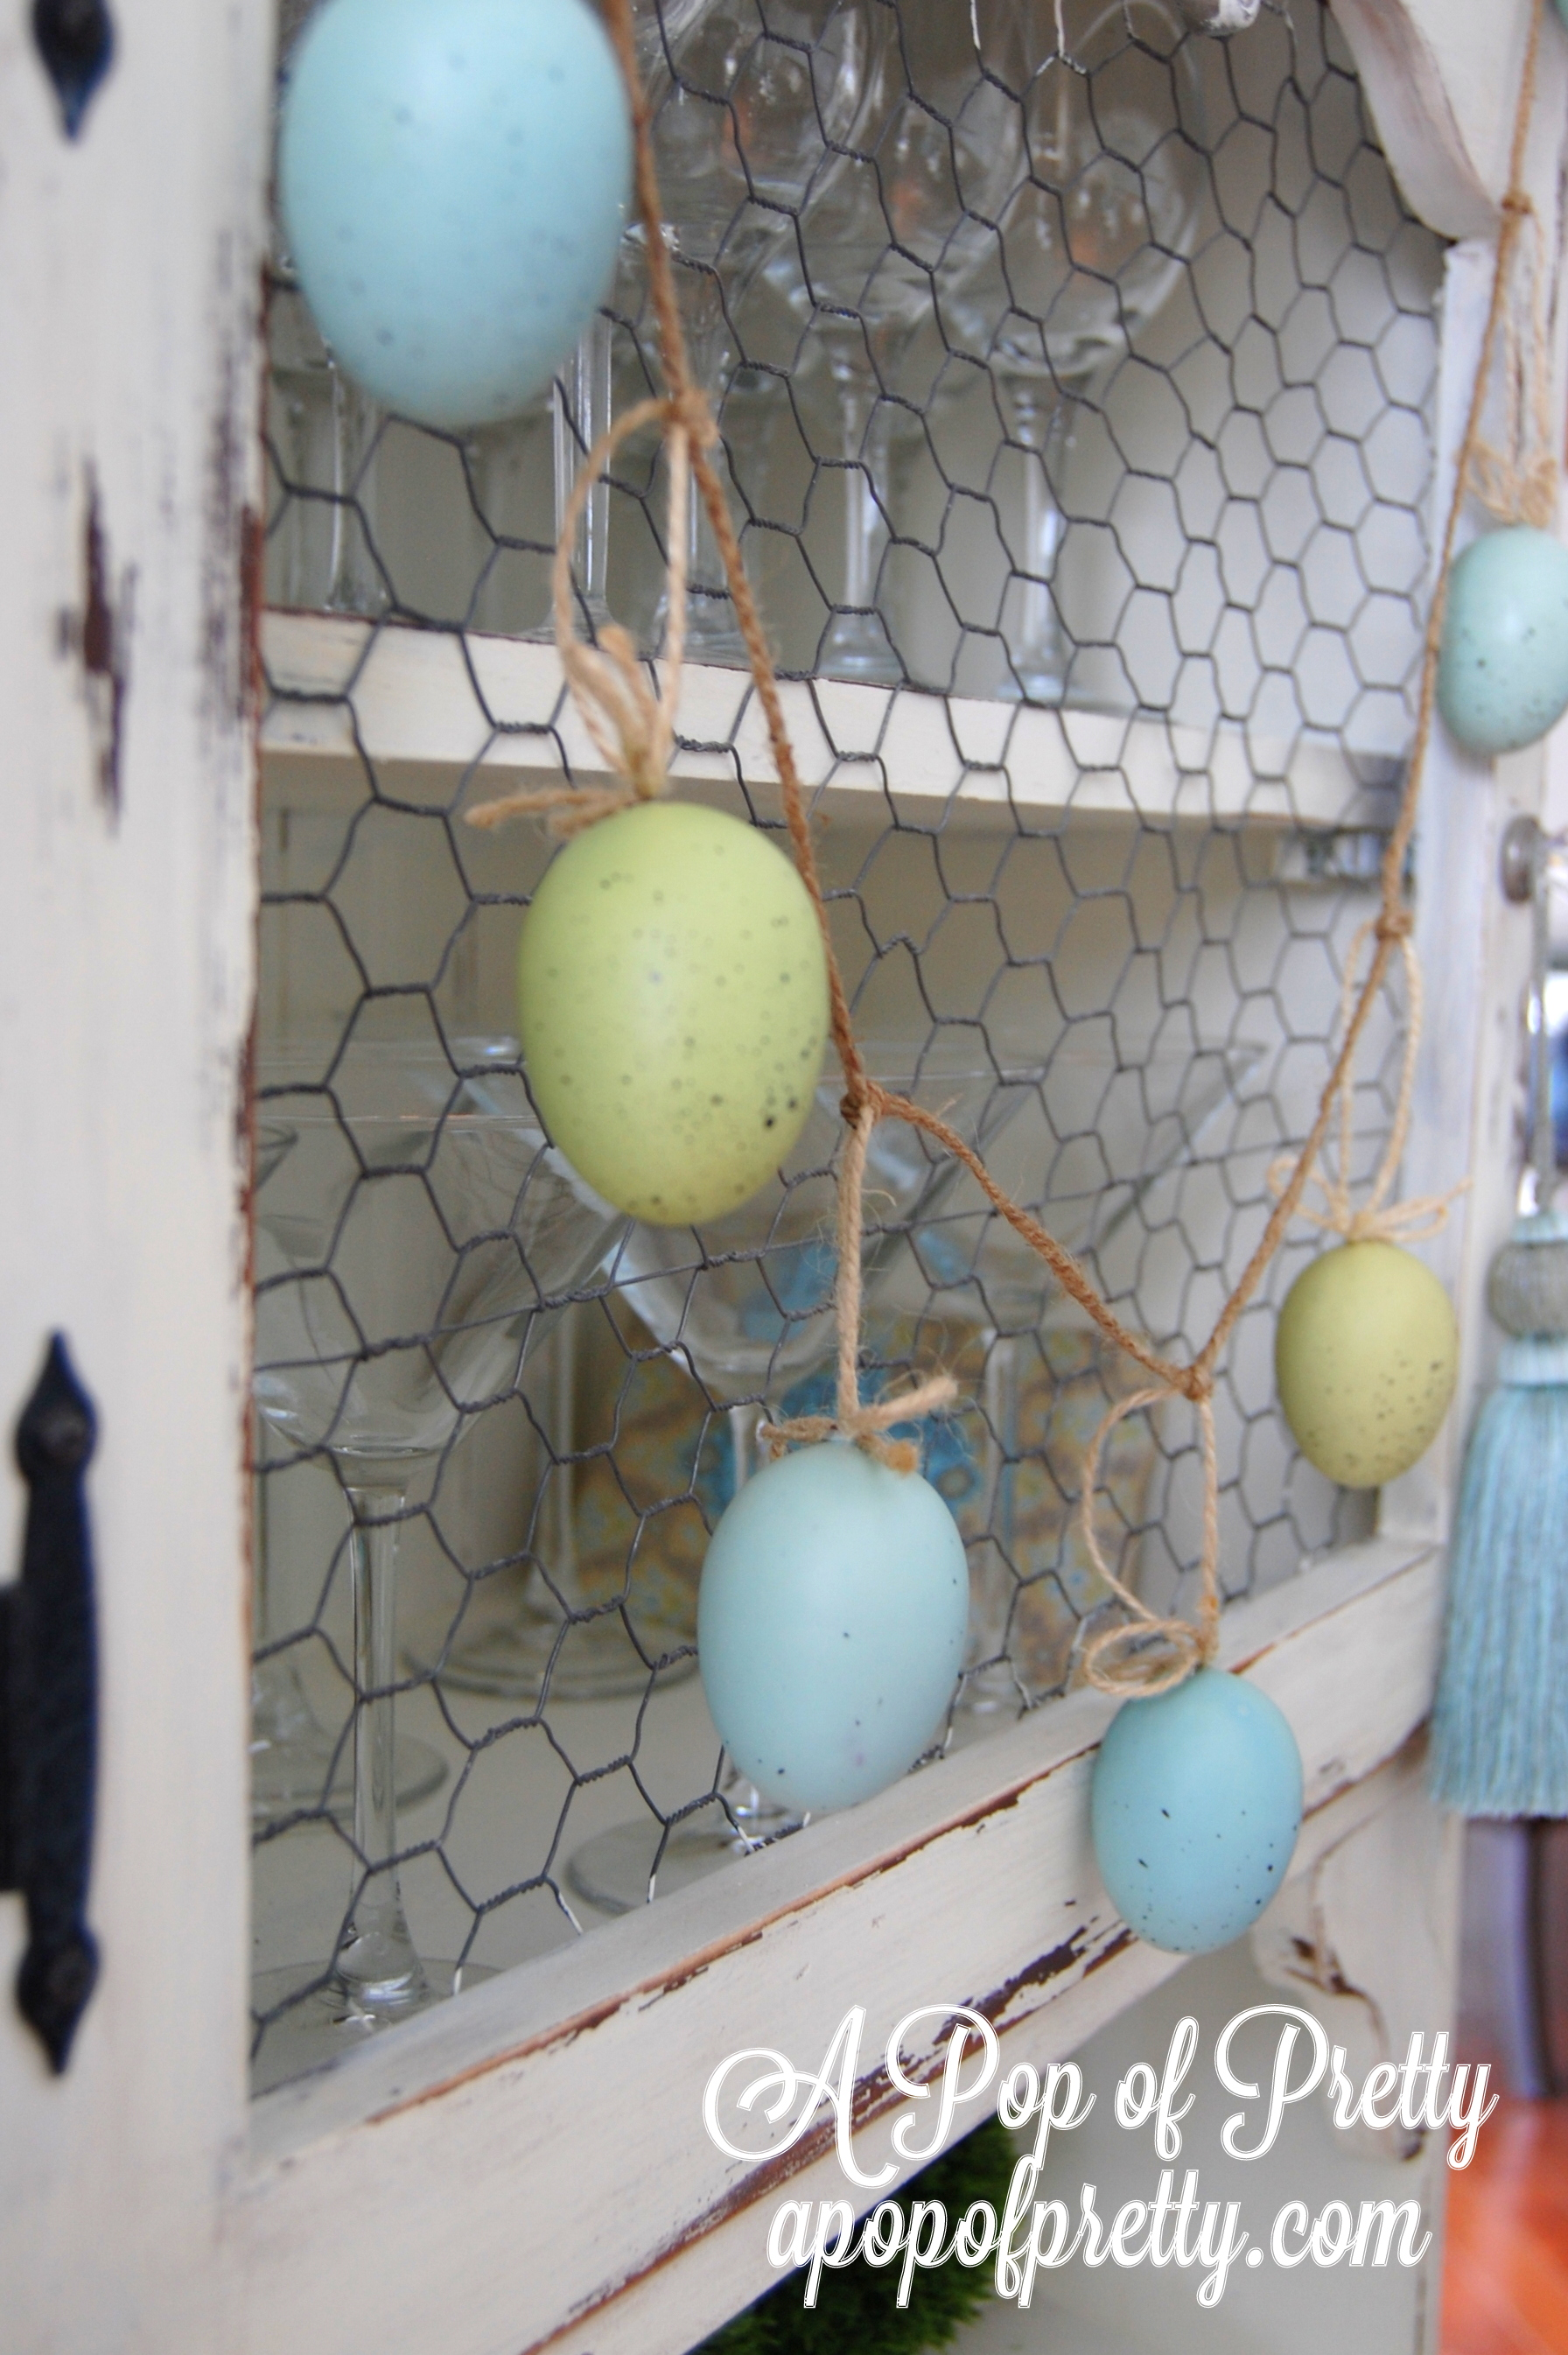 Easter Decorating Ideas: Dip-dyed eggs and paper bunnies!